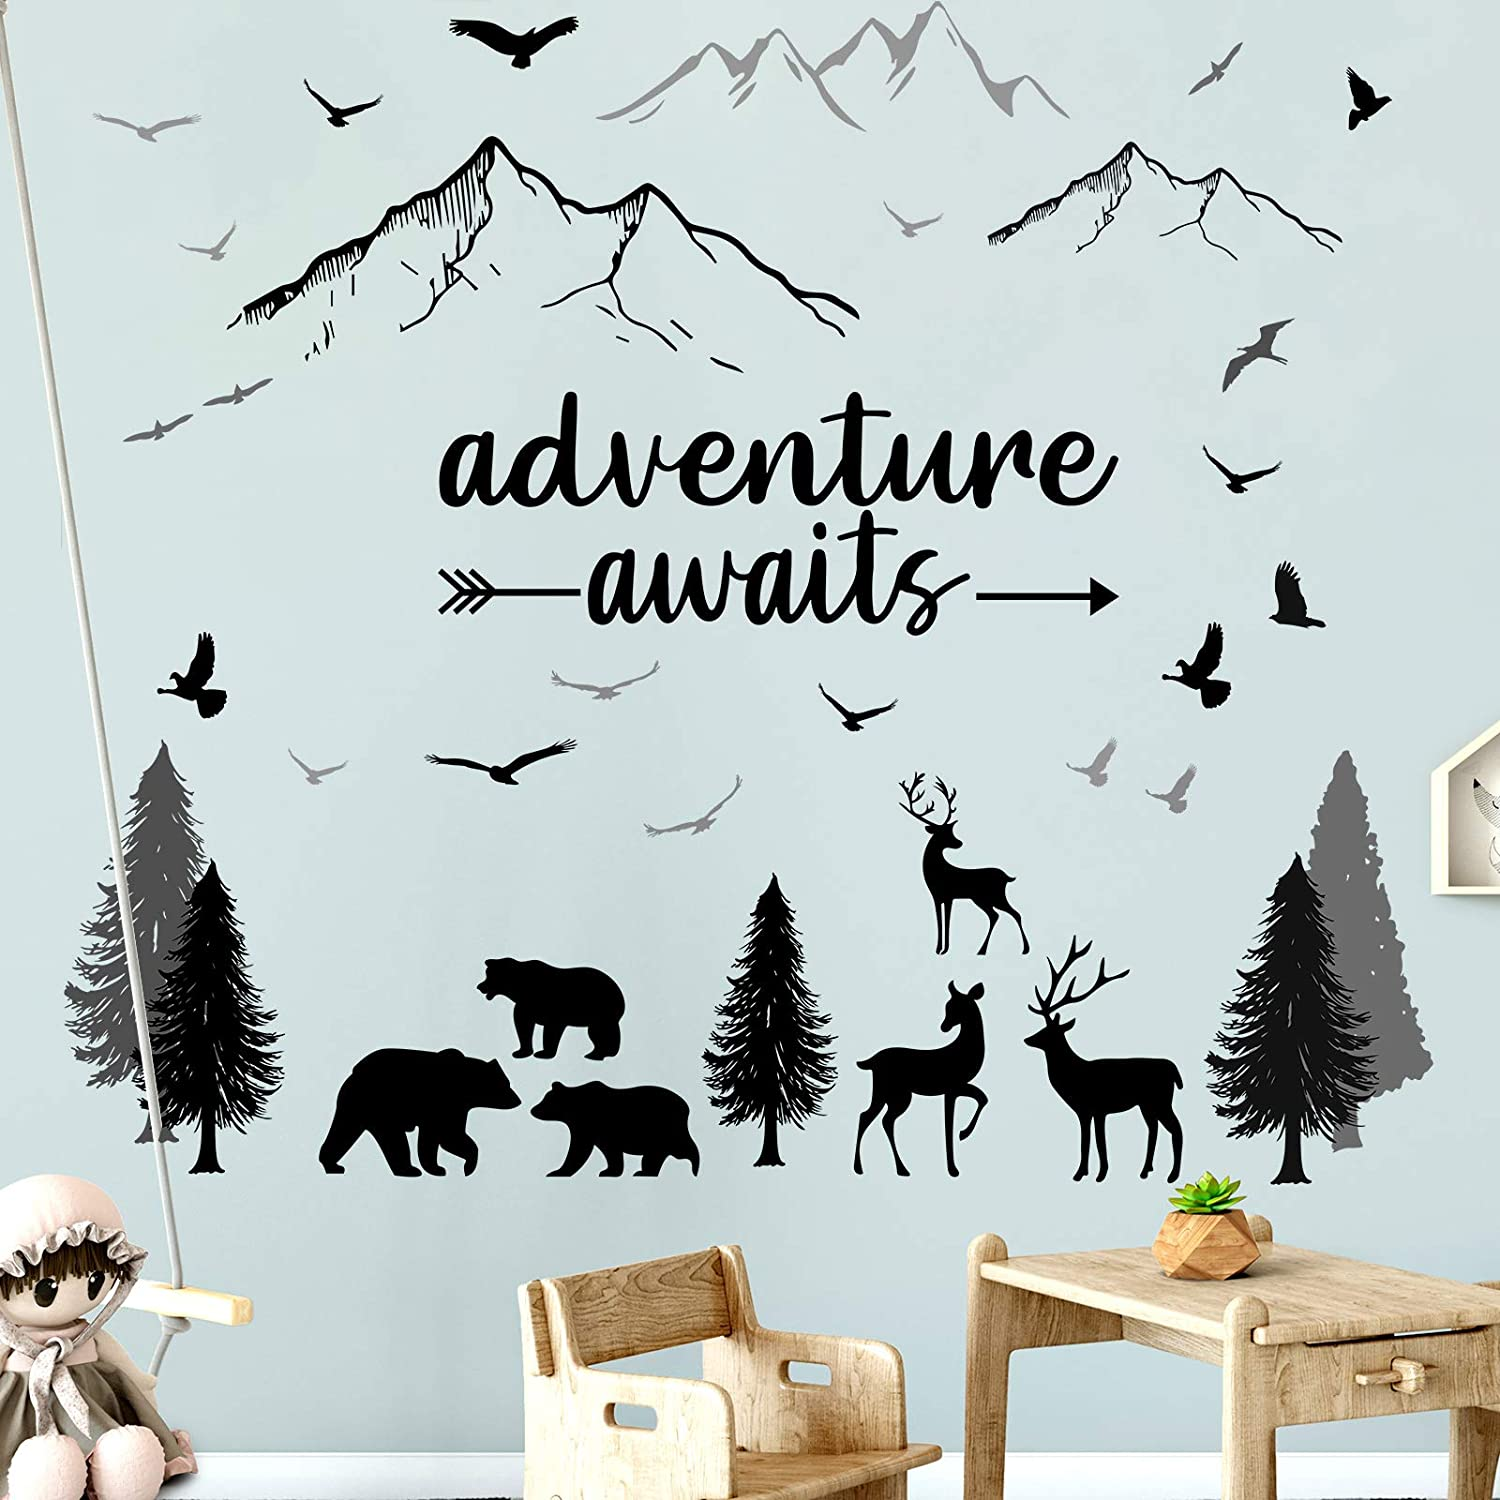 Pajean Woodland Nursery Wall Stickers Tree Wall Decals Vinyl Wall Quotes Stickers Jungle Wild Mountain Forest Animal Deer Bear DIY Stickers for Kids Room Decor Boy Living Room Bedroom, 9.8 x 13.8 Inch